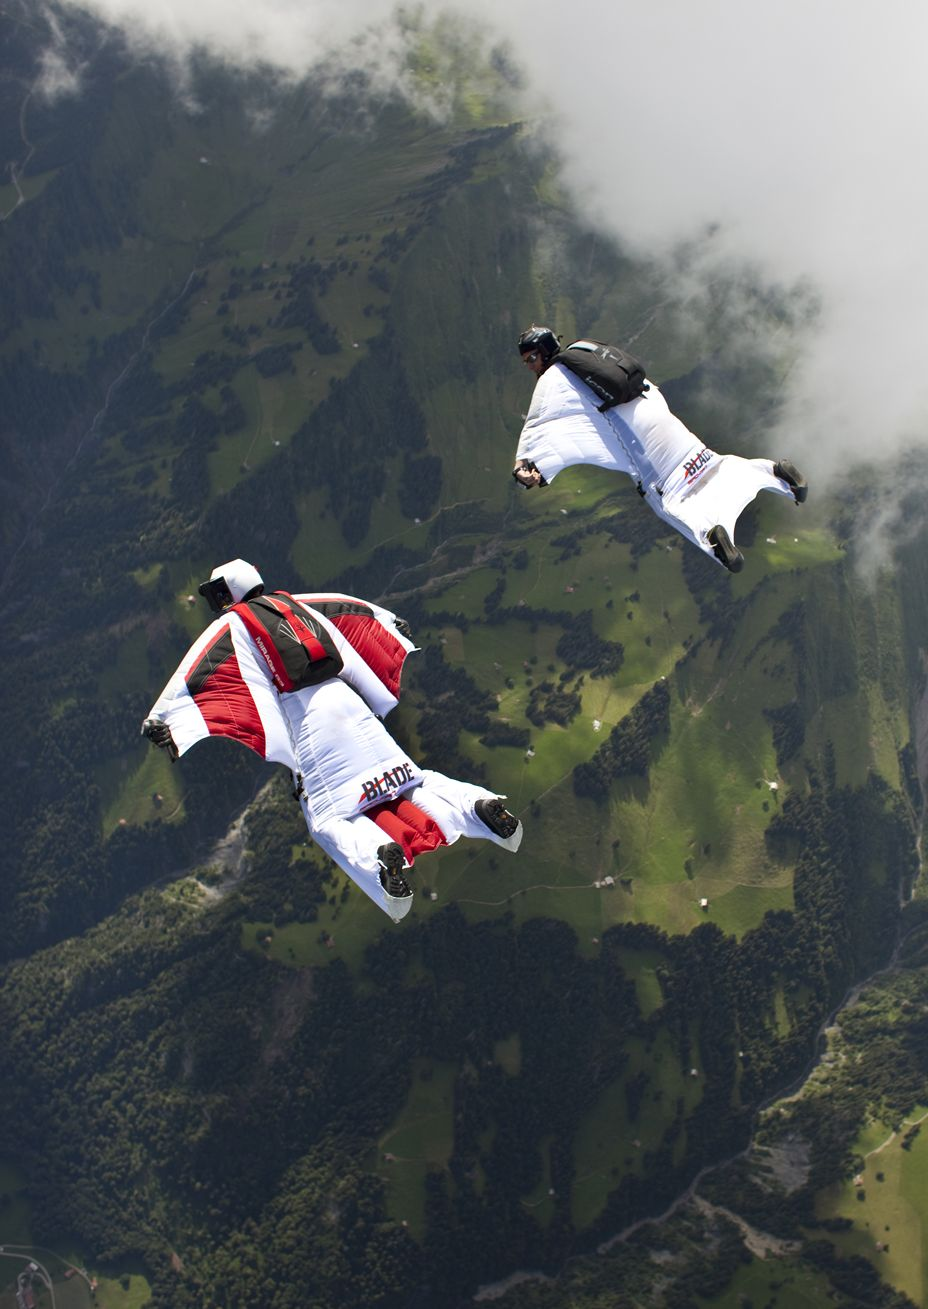 Wingsuit in flight, I am sure I will do it one day